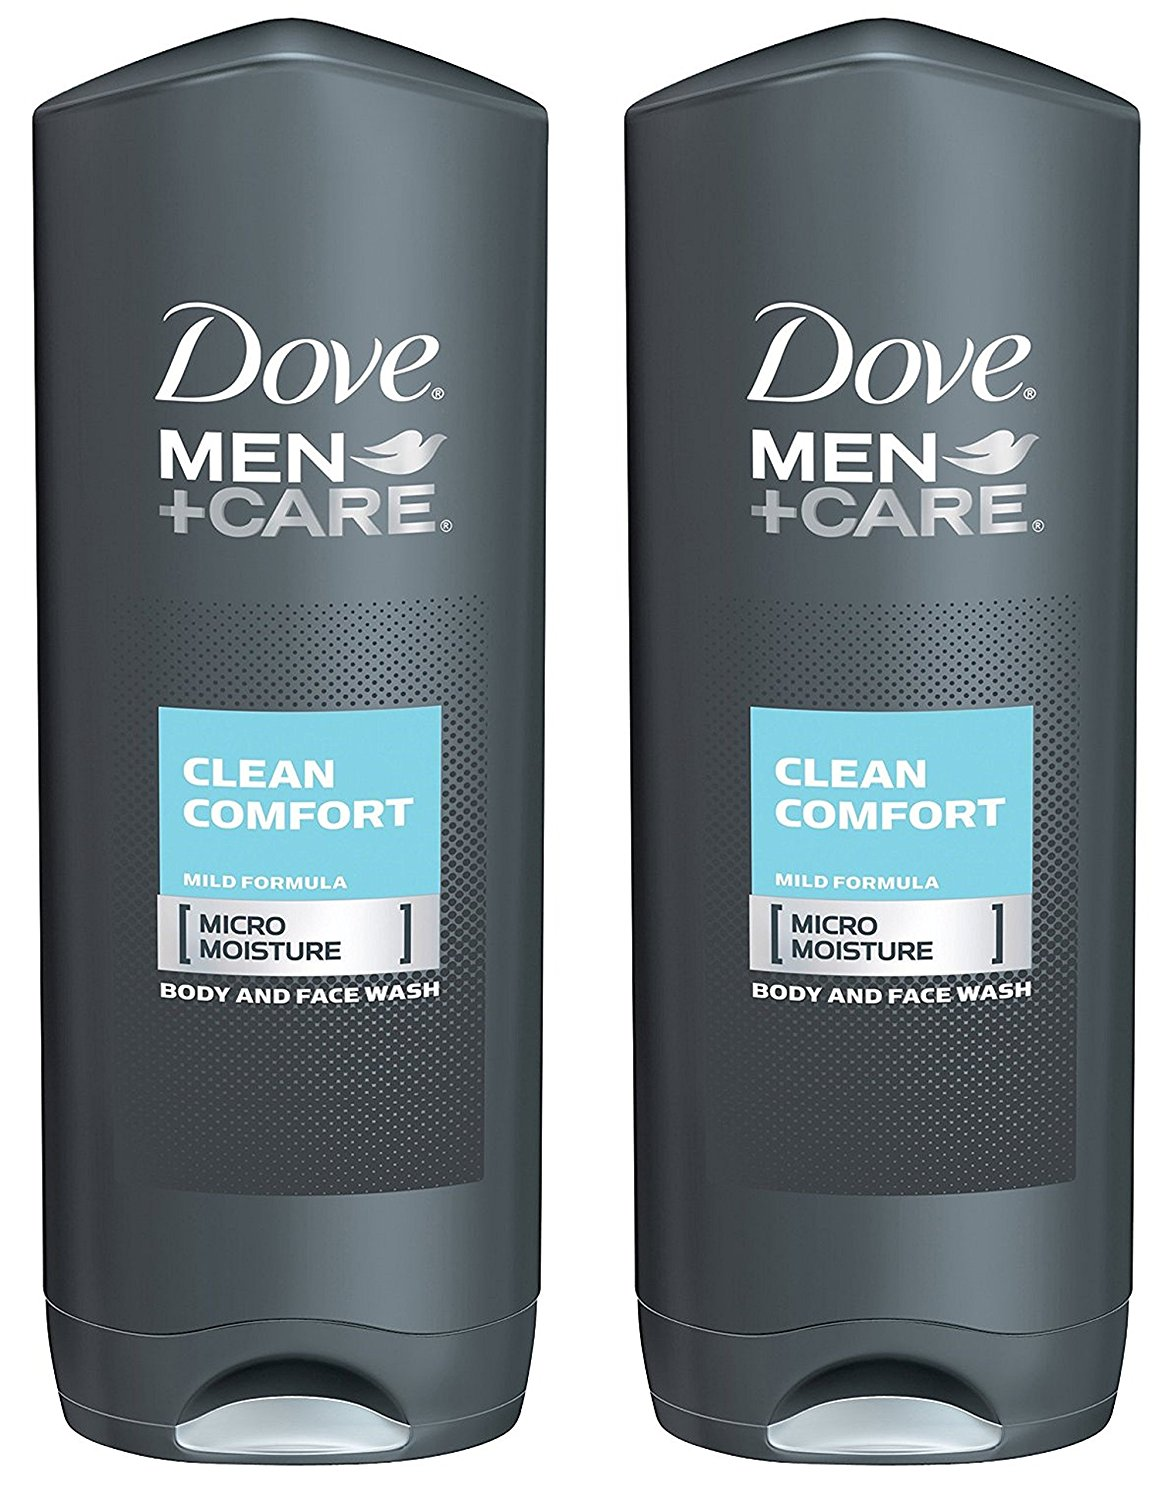 Dove Men +Care Body and Face Wash - Clean Comfort - 18 oz - 2 pk